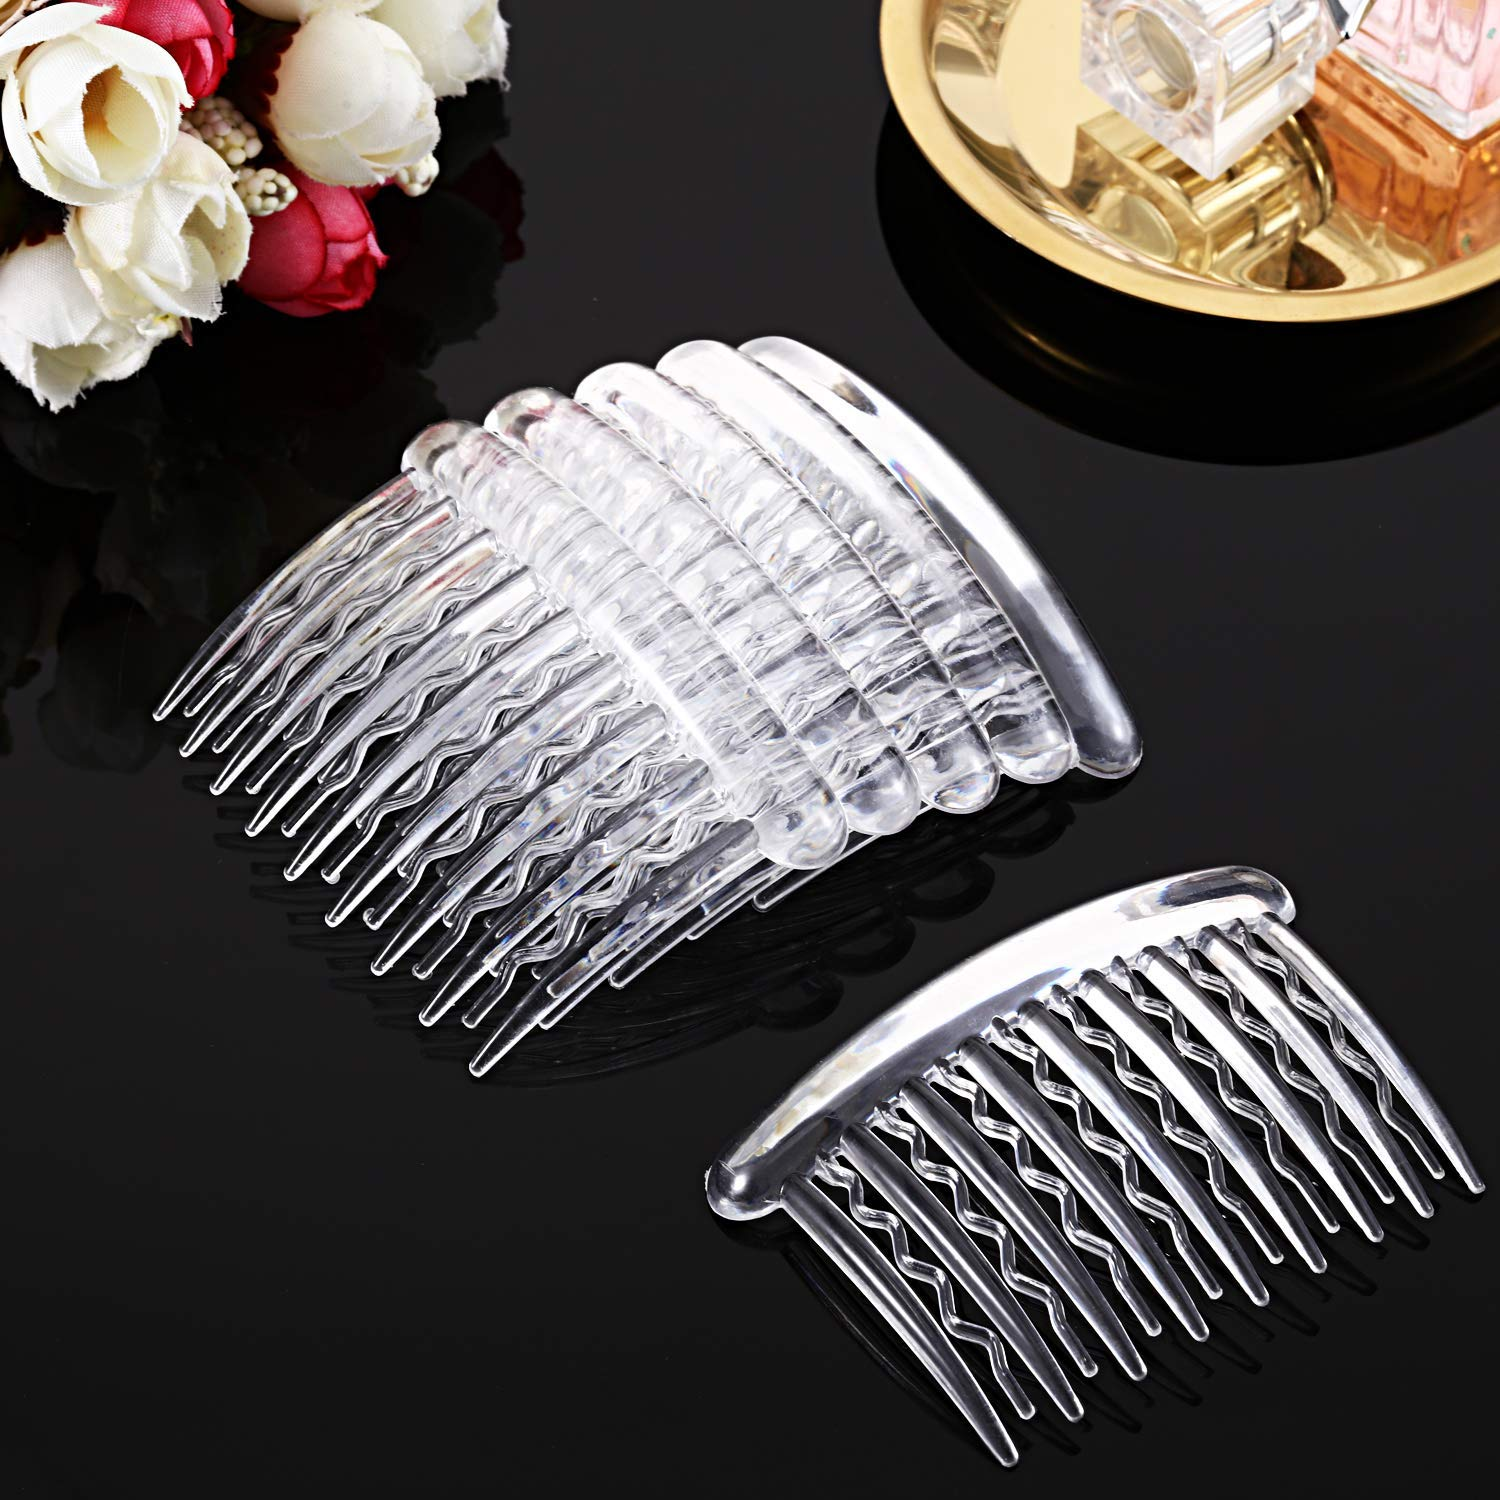 Gejoy 12 Pieces Plastic Teeth Hair Combs Tortoise Side Comb Hair Accessories for Fine Hair (Transparent) : Beauty